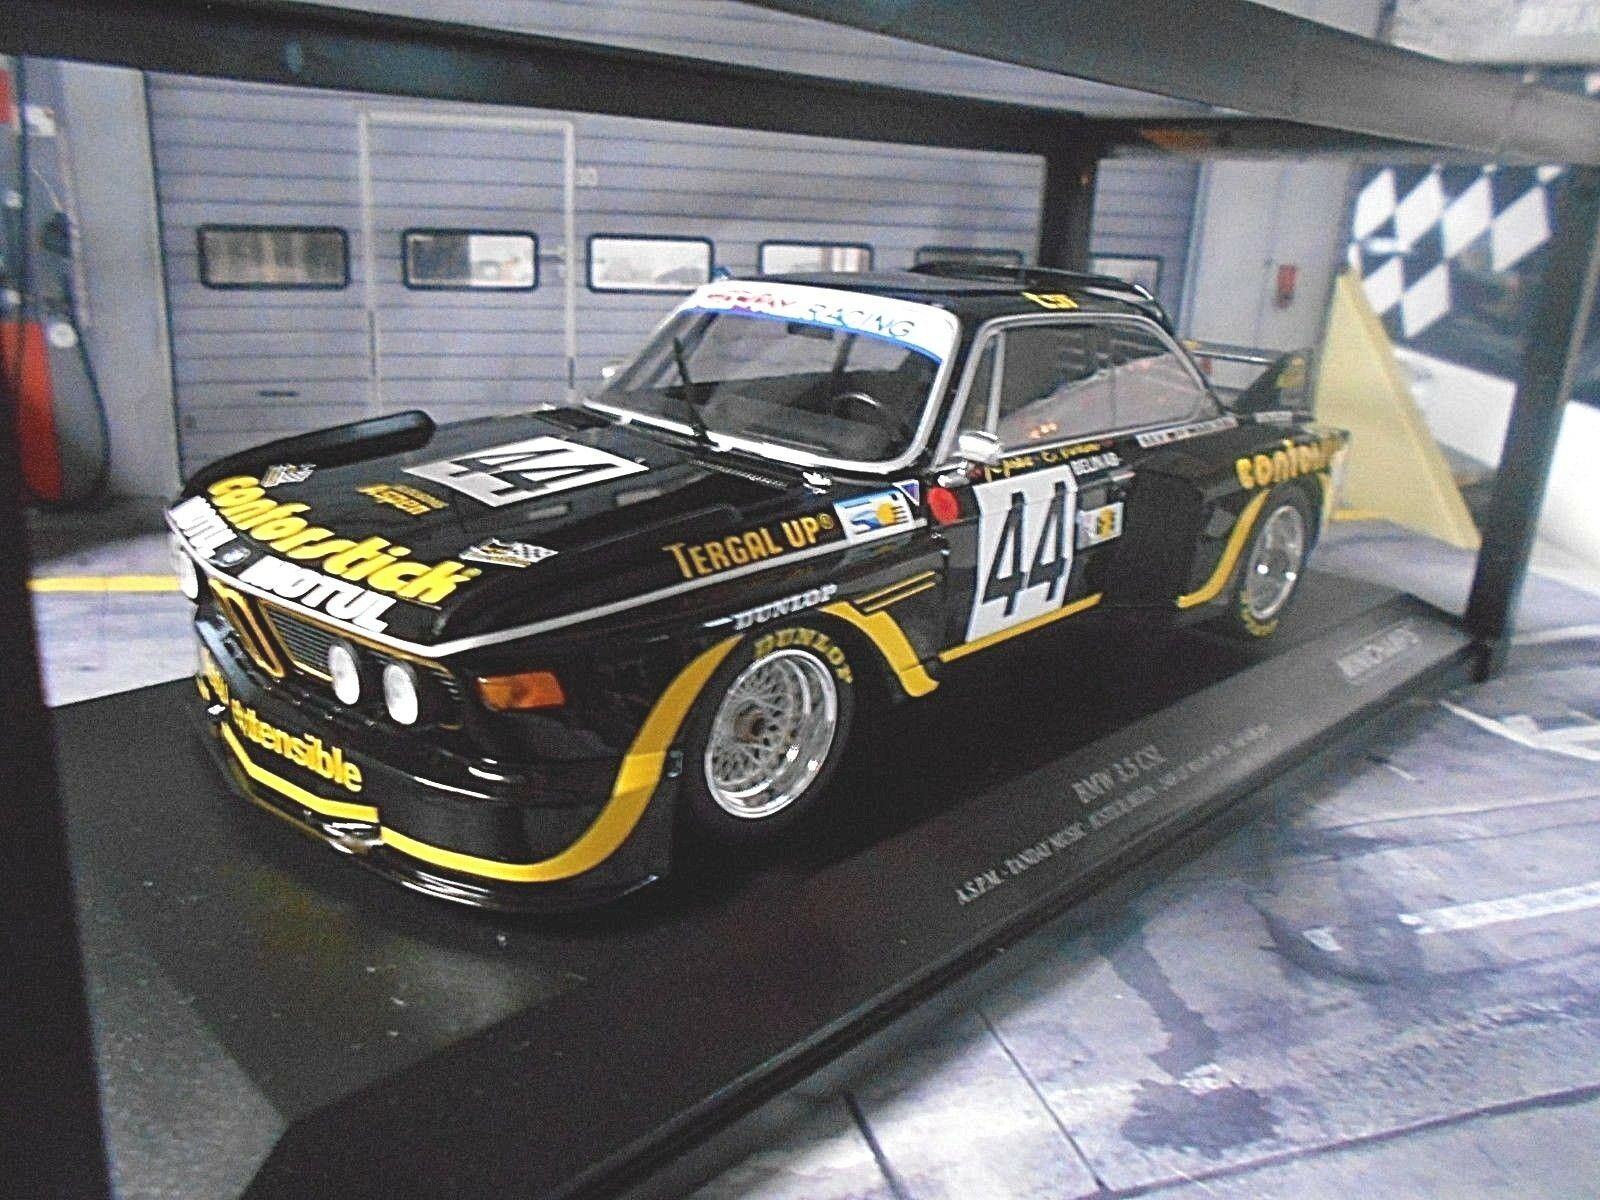 BMW 3.5 CSL Le uomos 1976  44 Teay Music RACING Justice nelin Minichamps 1 18